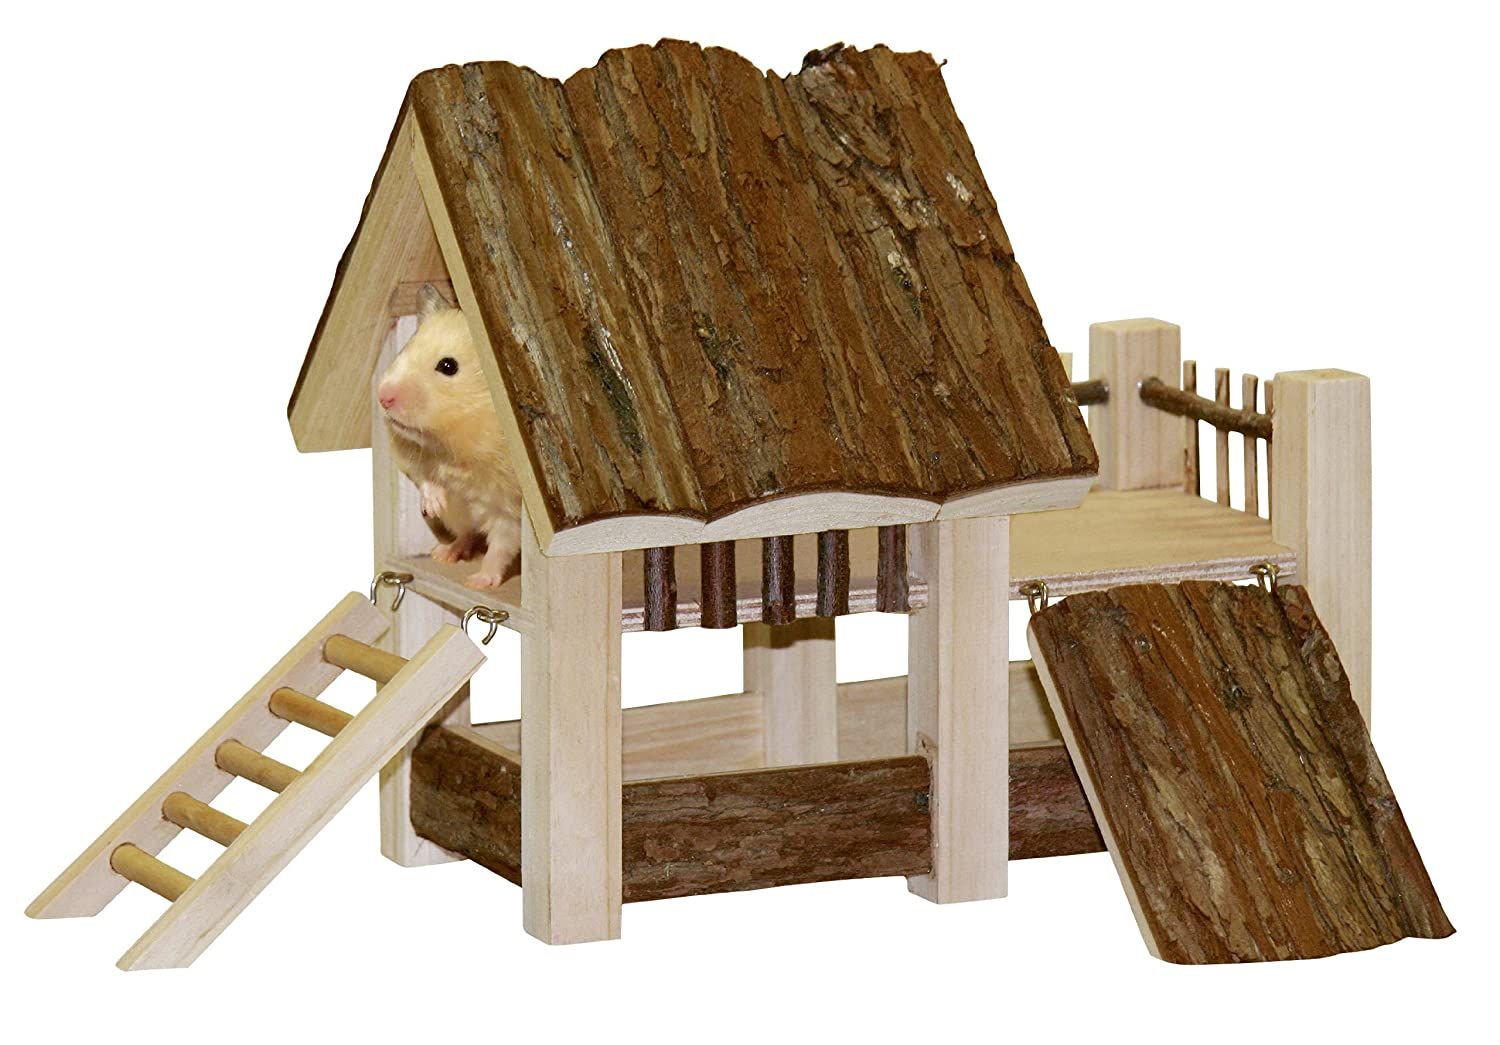 Kerbl Wooden House Nature 34 x 27 x 22 cm